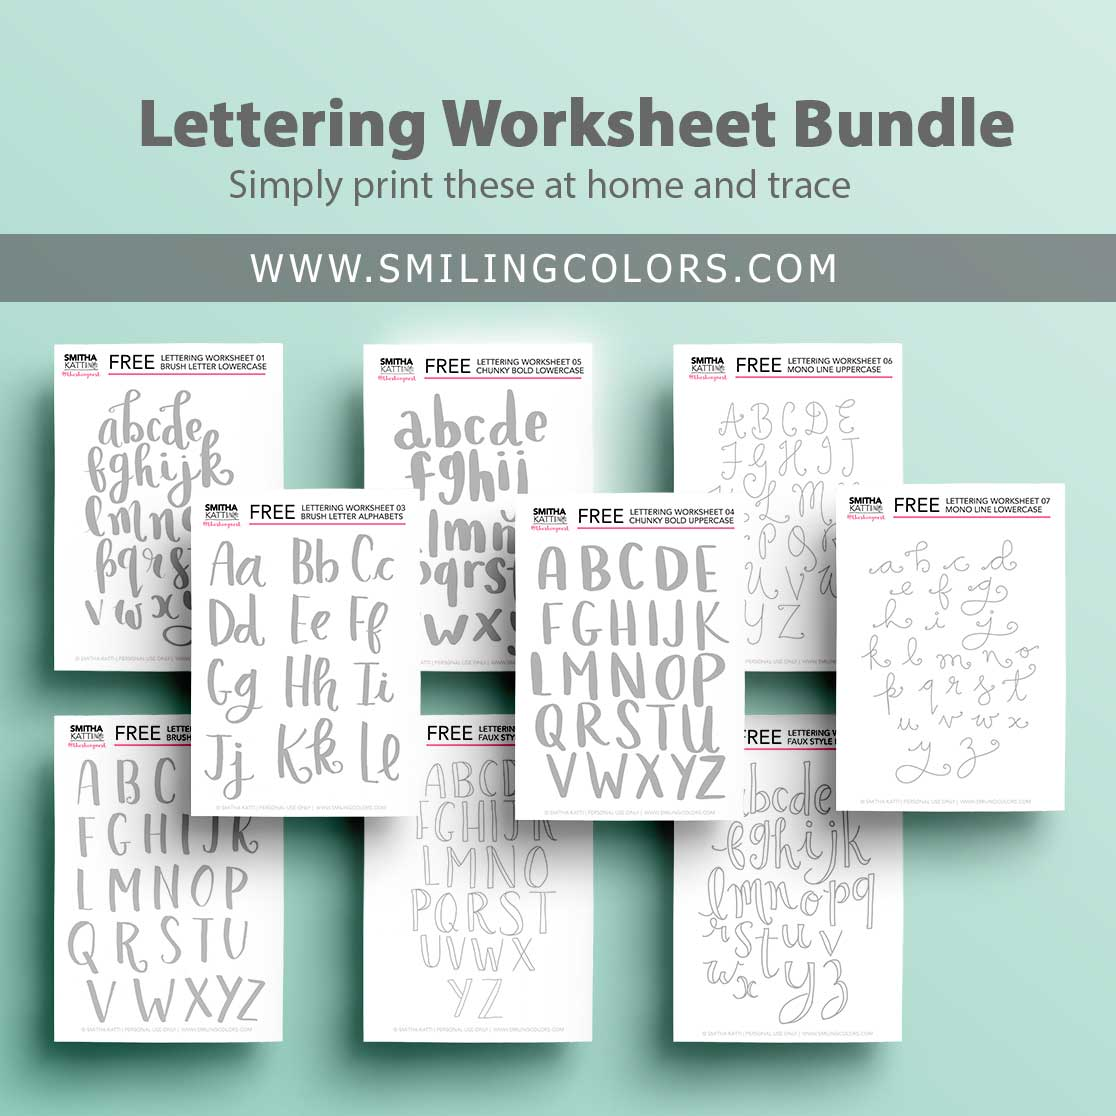 photo about Printable Lettering Free named Lettering worksheets: 9 Totally free printable coach sheets in the direction of hint